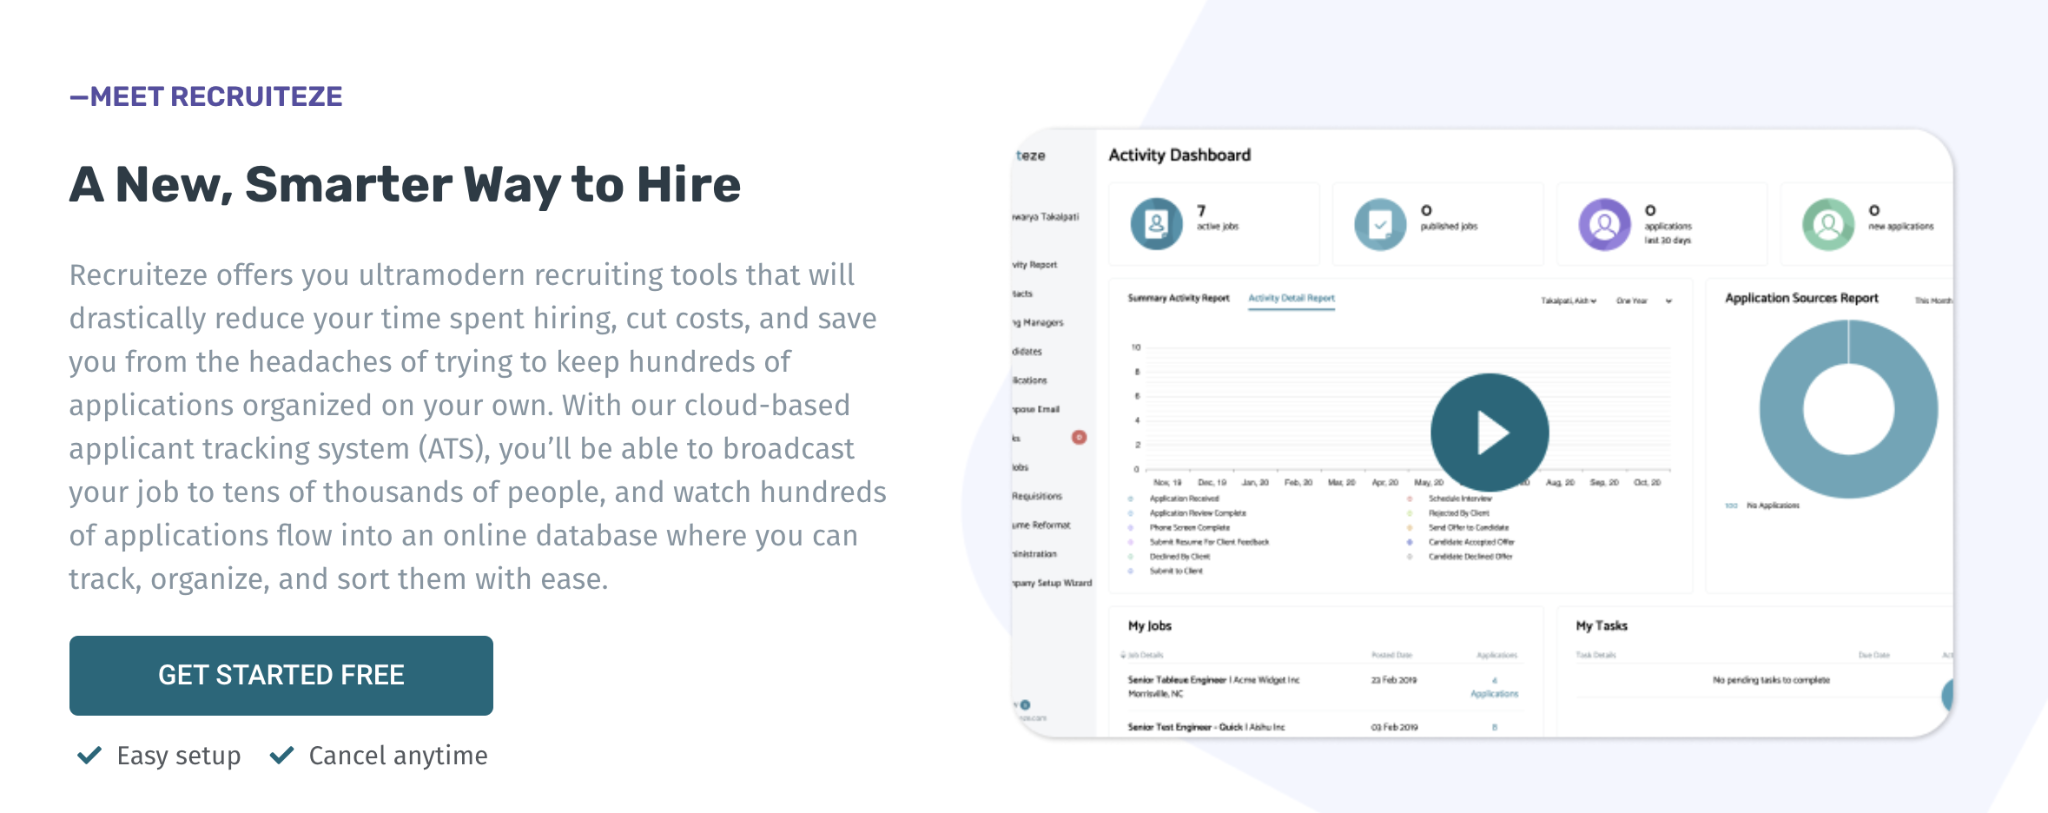 Small business recruiting strategies are far easier with Recruiteze